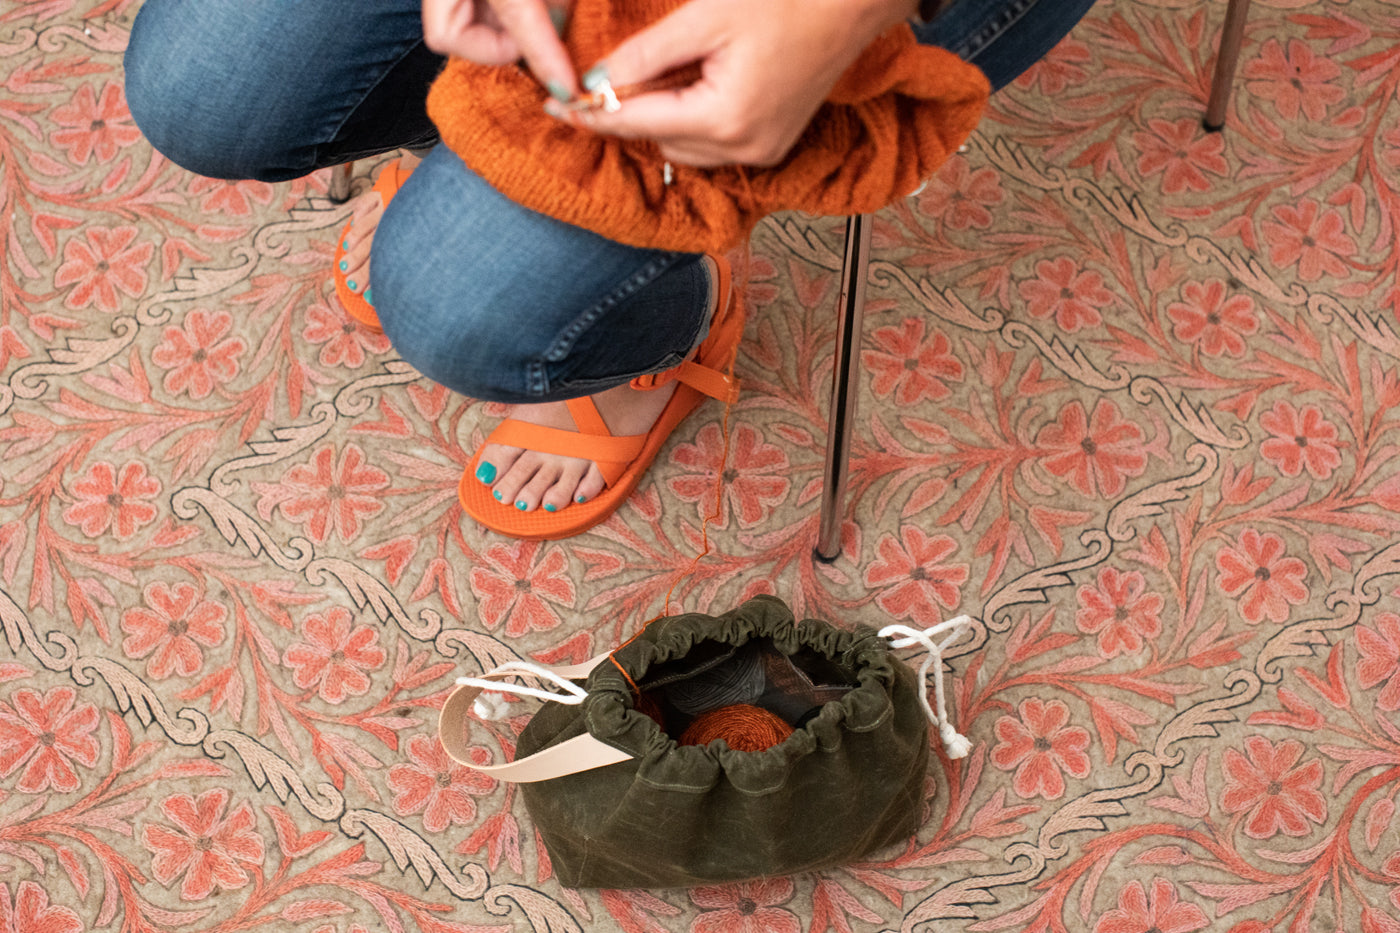 This is an image of a person's hands knitting with a work bag on the floor on top of an orange and tan rug